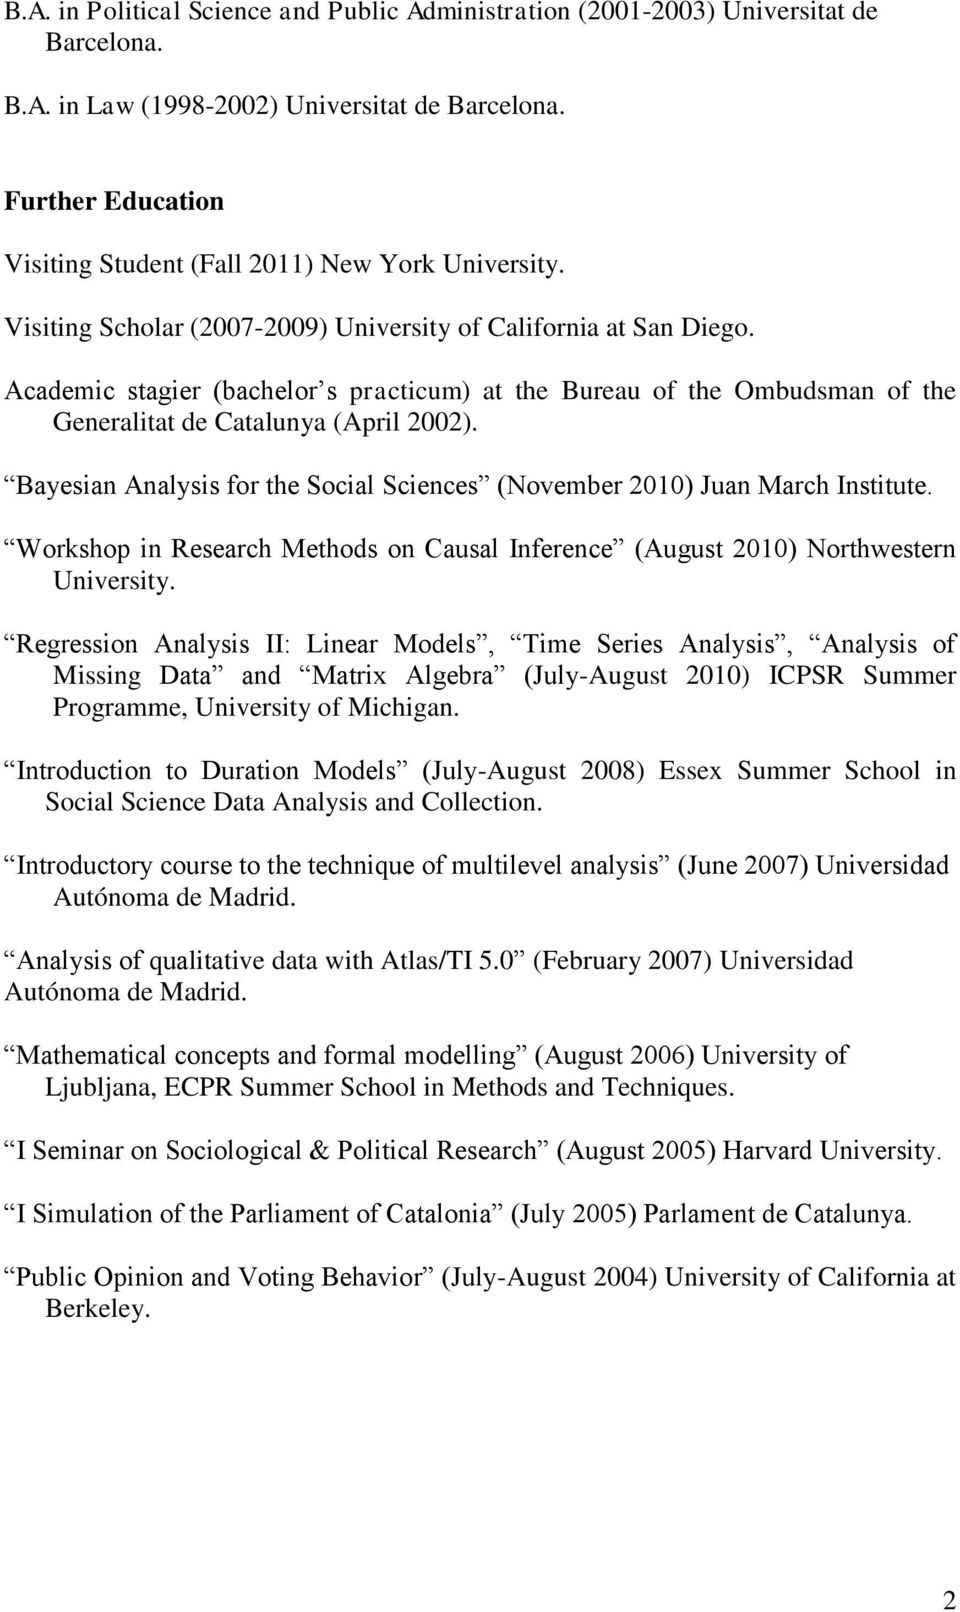 Academic stagier (bachelor s practicum) at the Bureau of the Ombudsman of the Generalitat de Catalunya (April 2002). Bayesian Analysis for the Social Sciences (November 2010) Juan March Institute.